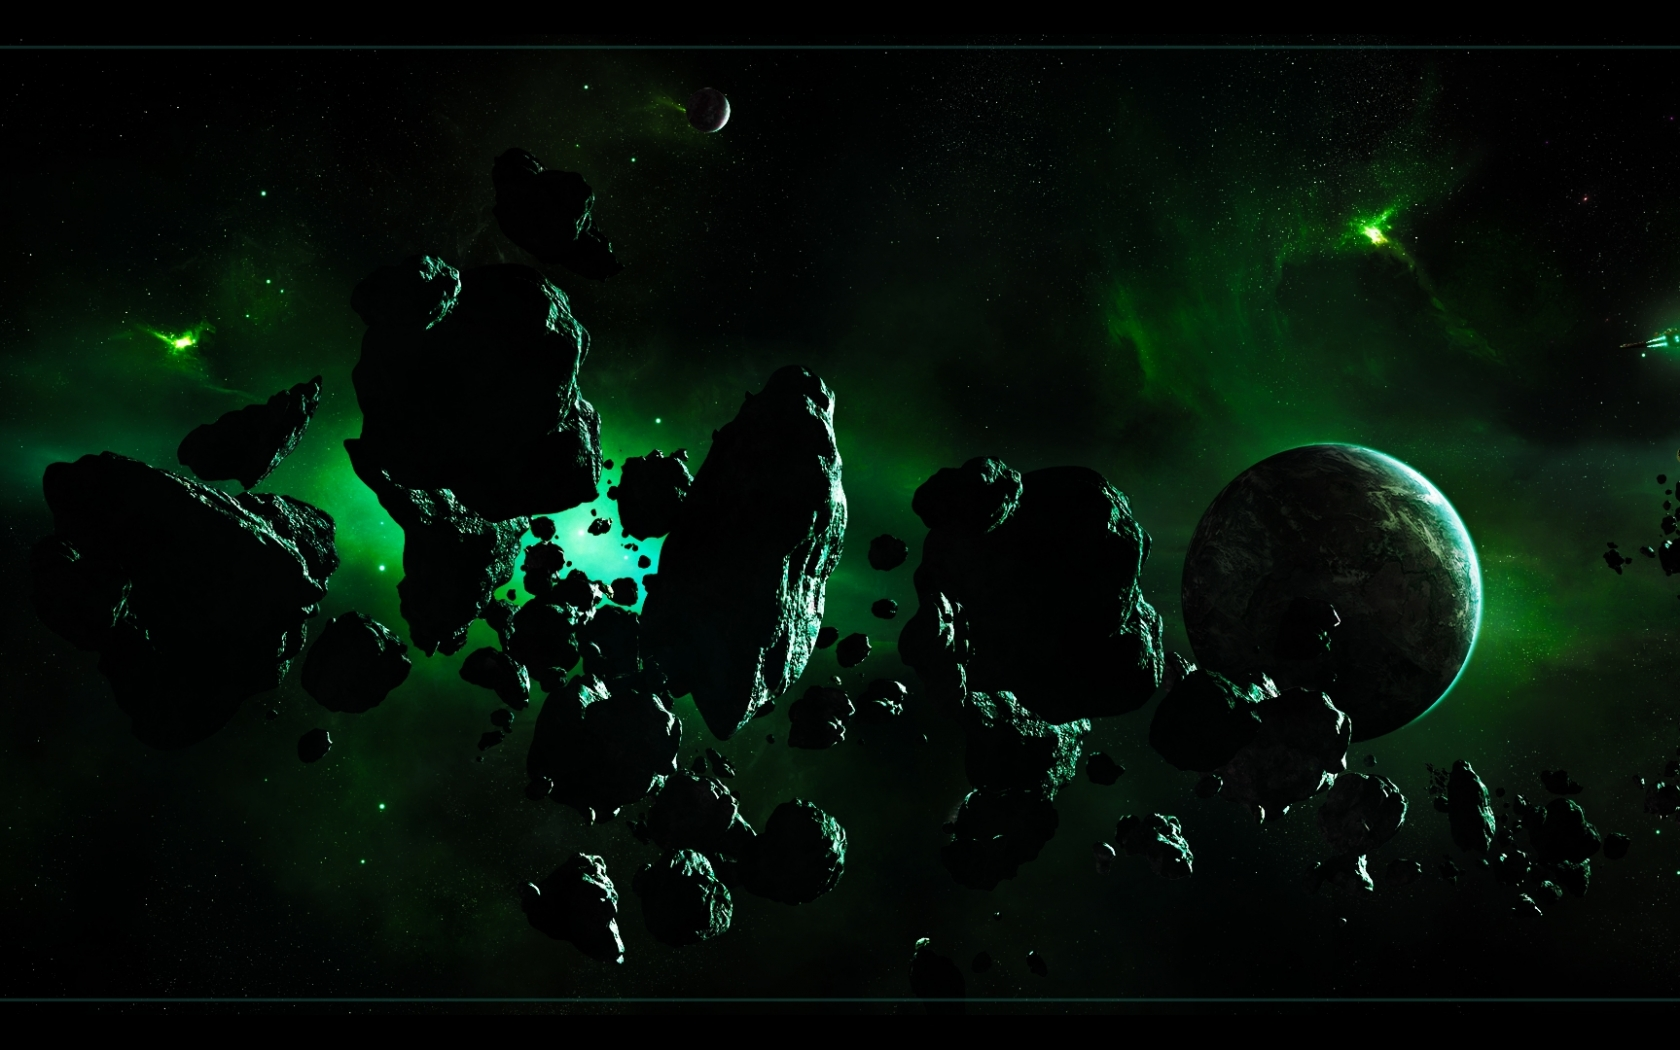 space planets dual screen 3840x1080 wallpaper Wallpaper 1680x1050